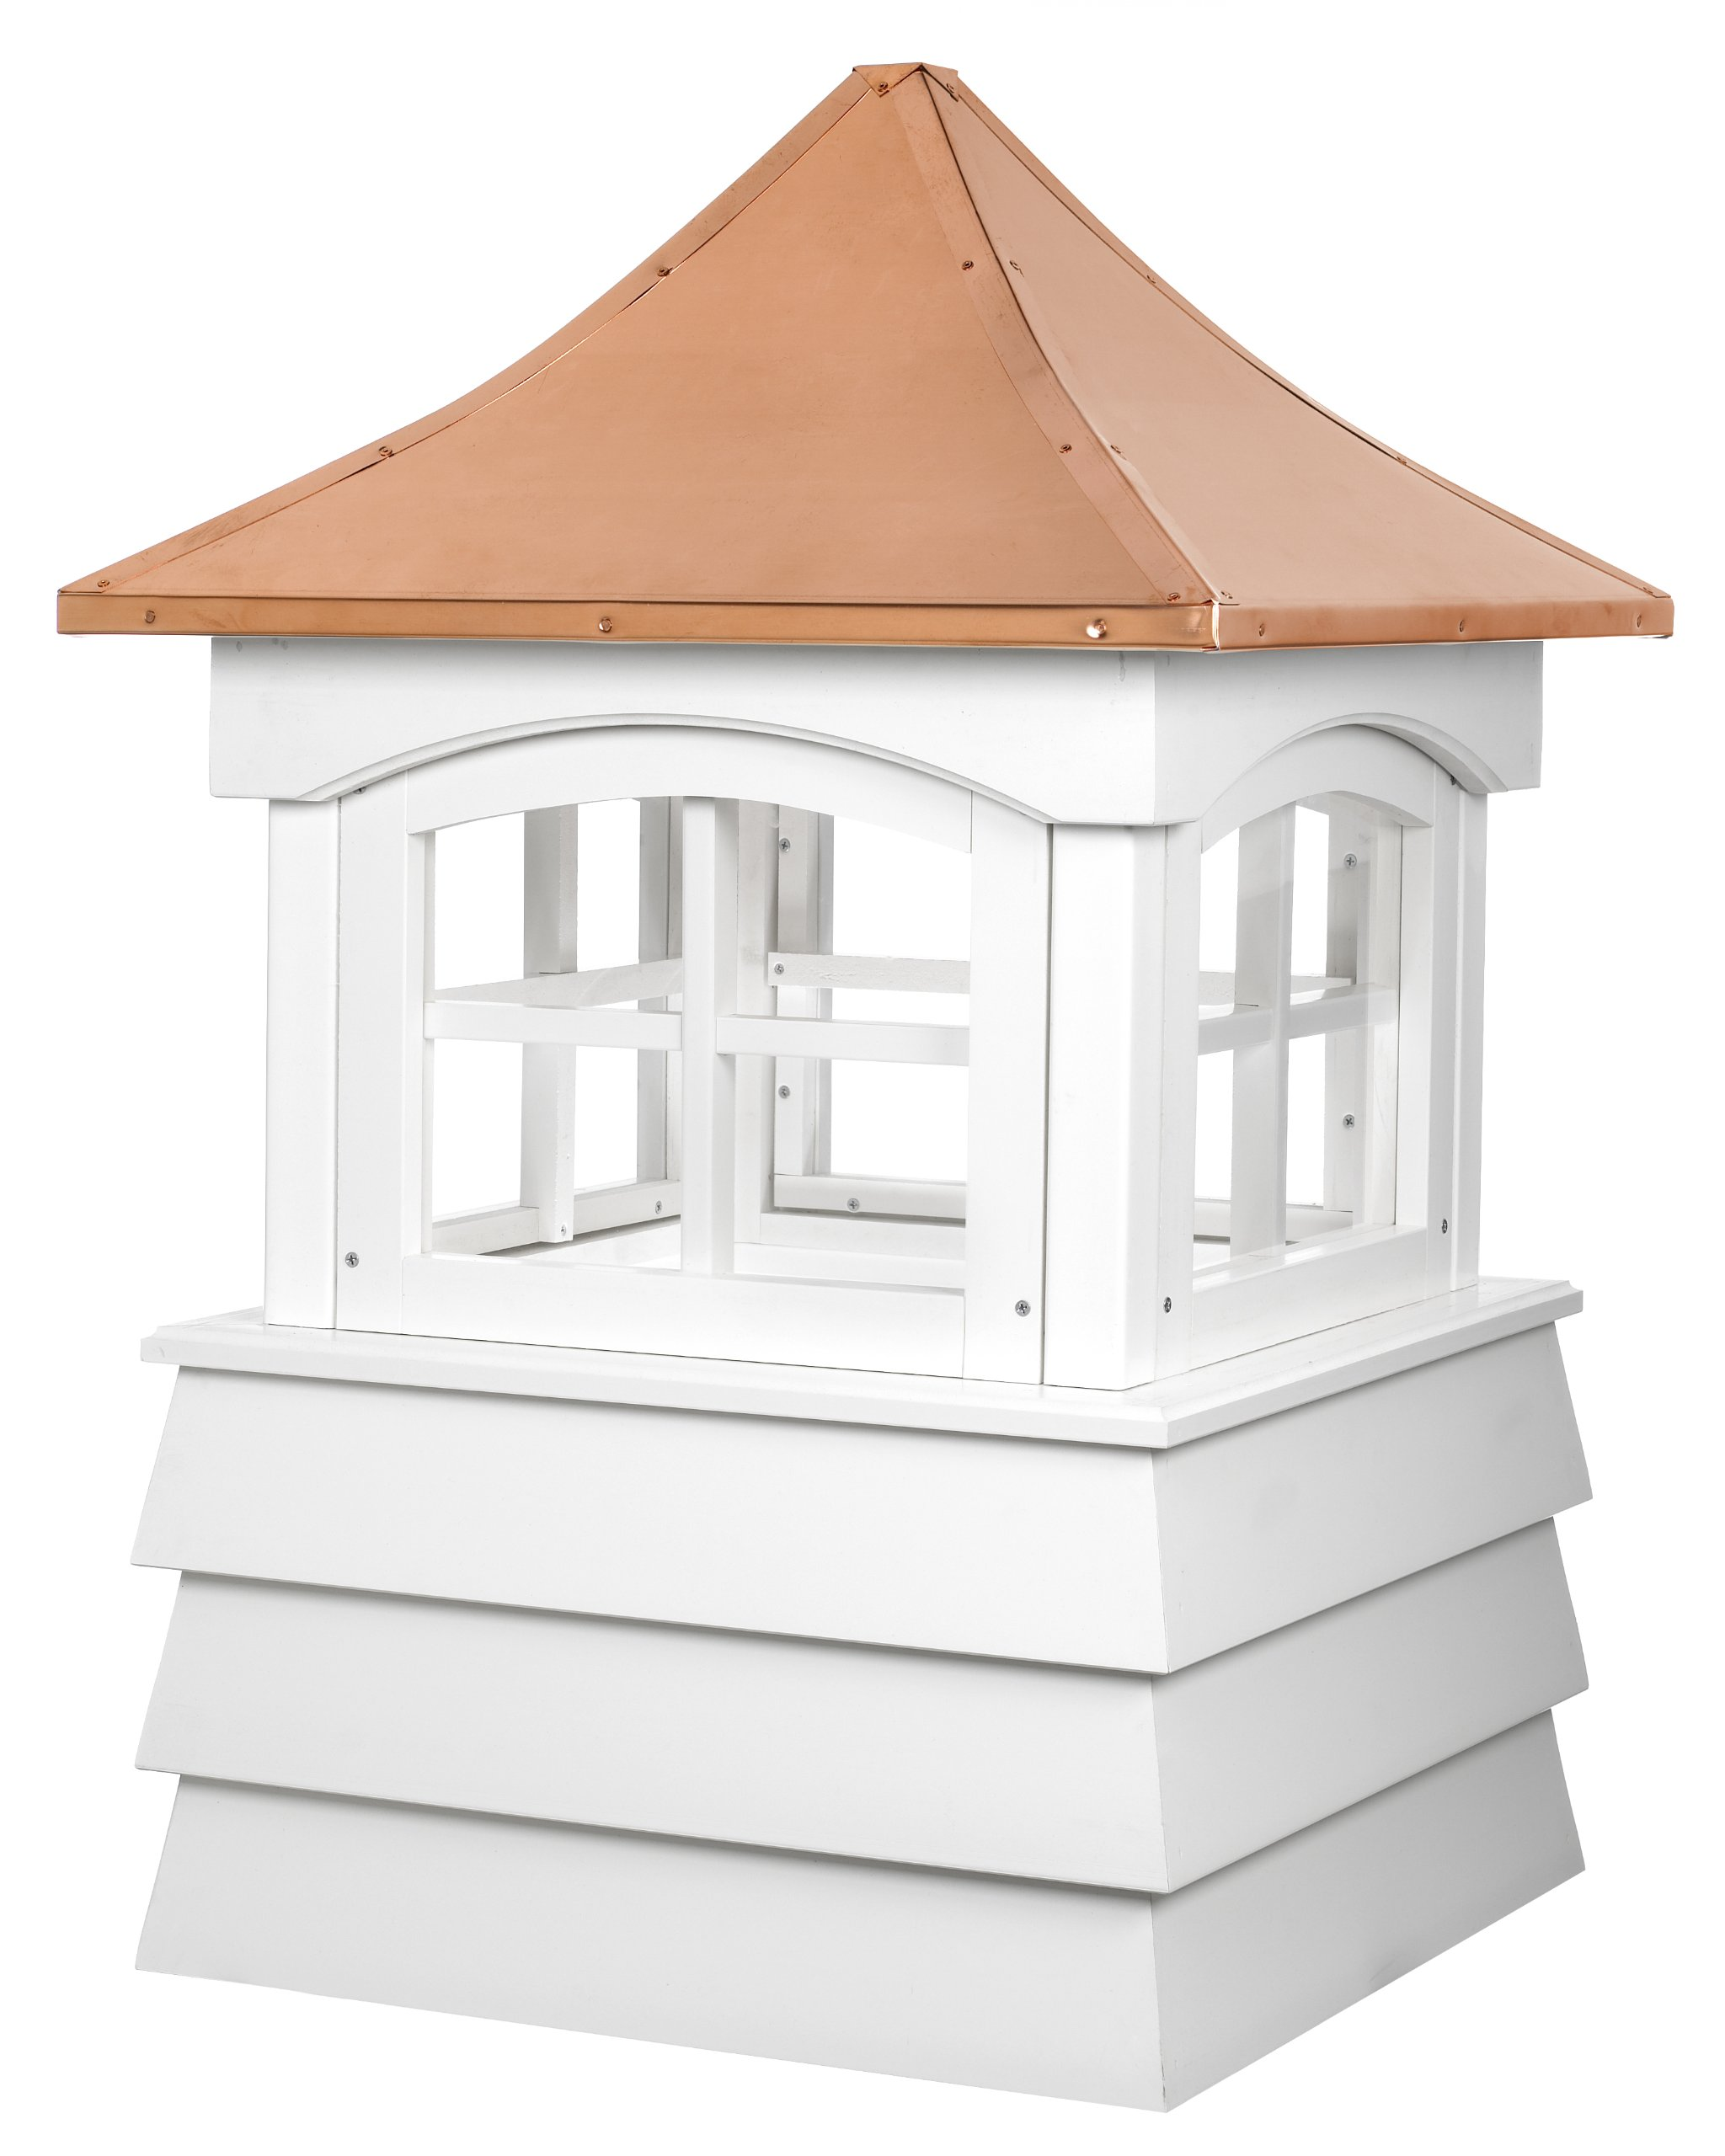 Good Directions Guilford Vinyl Cupola with Copper Roof, 30'' x 49''